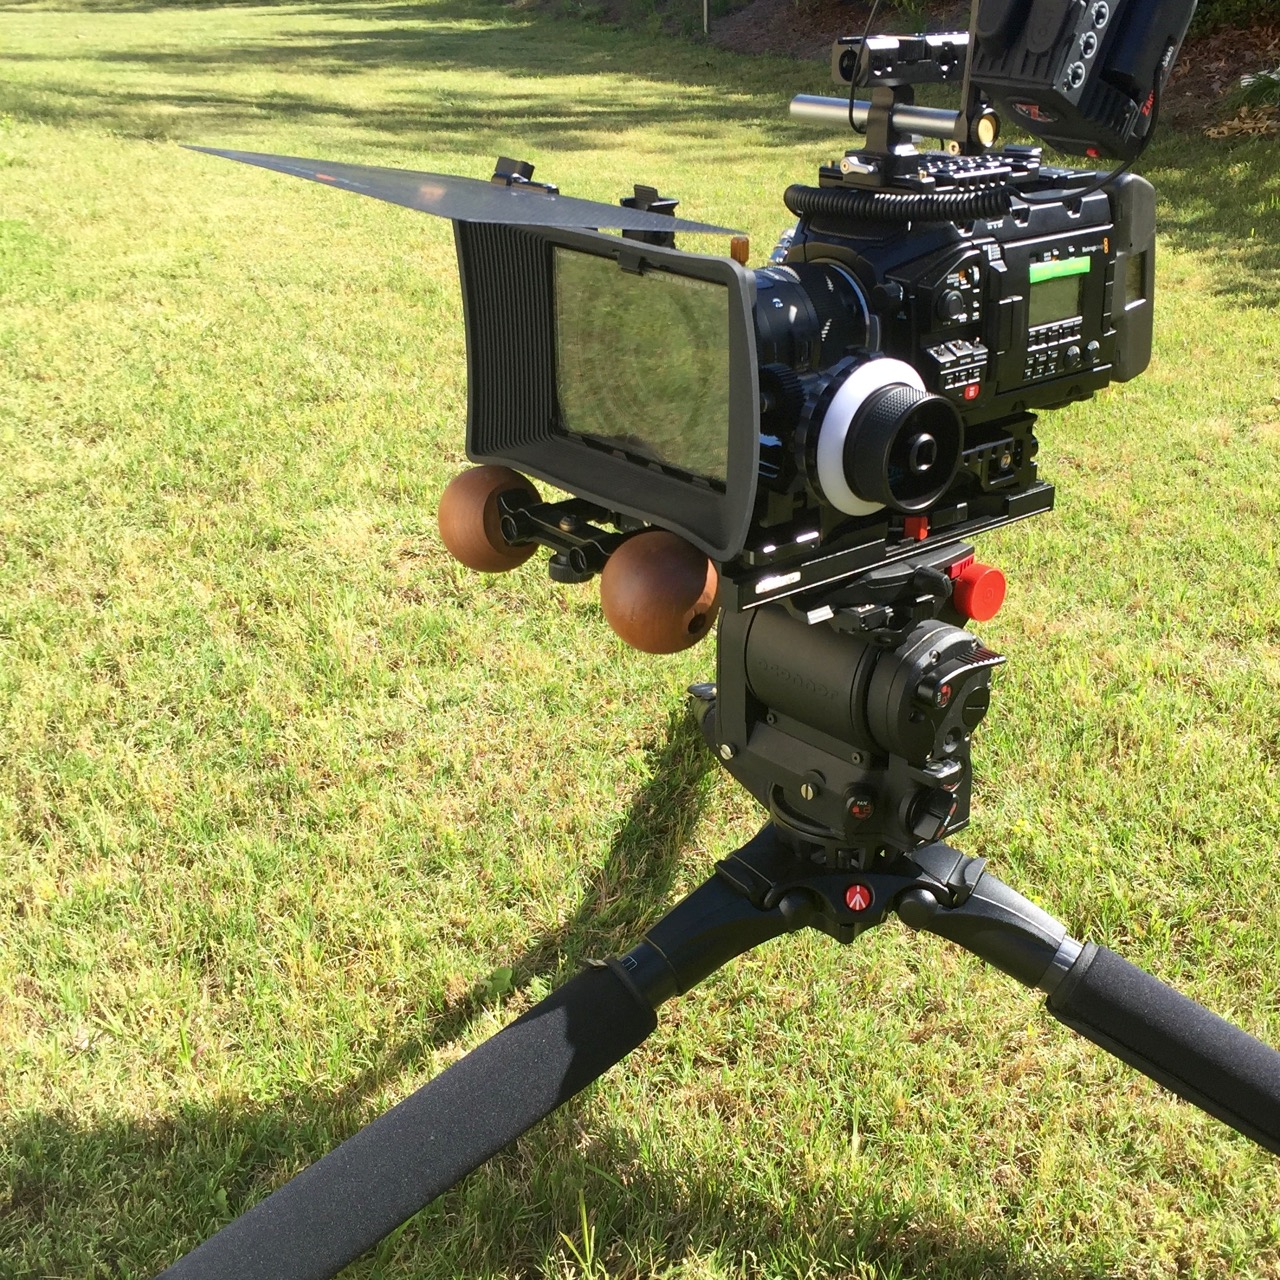 O'Connor 1030D and Manfrotto 536 - a match made in heaven.